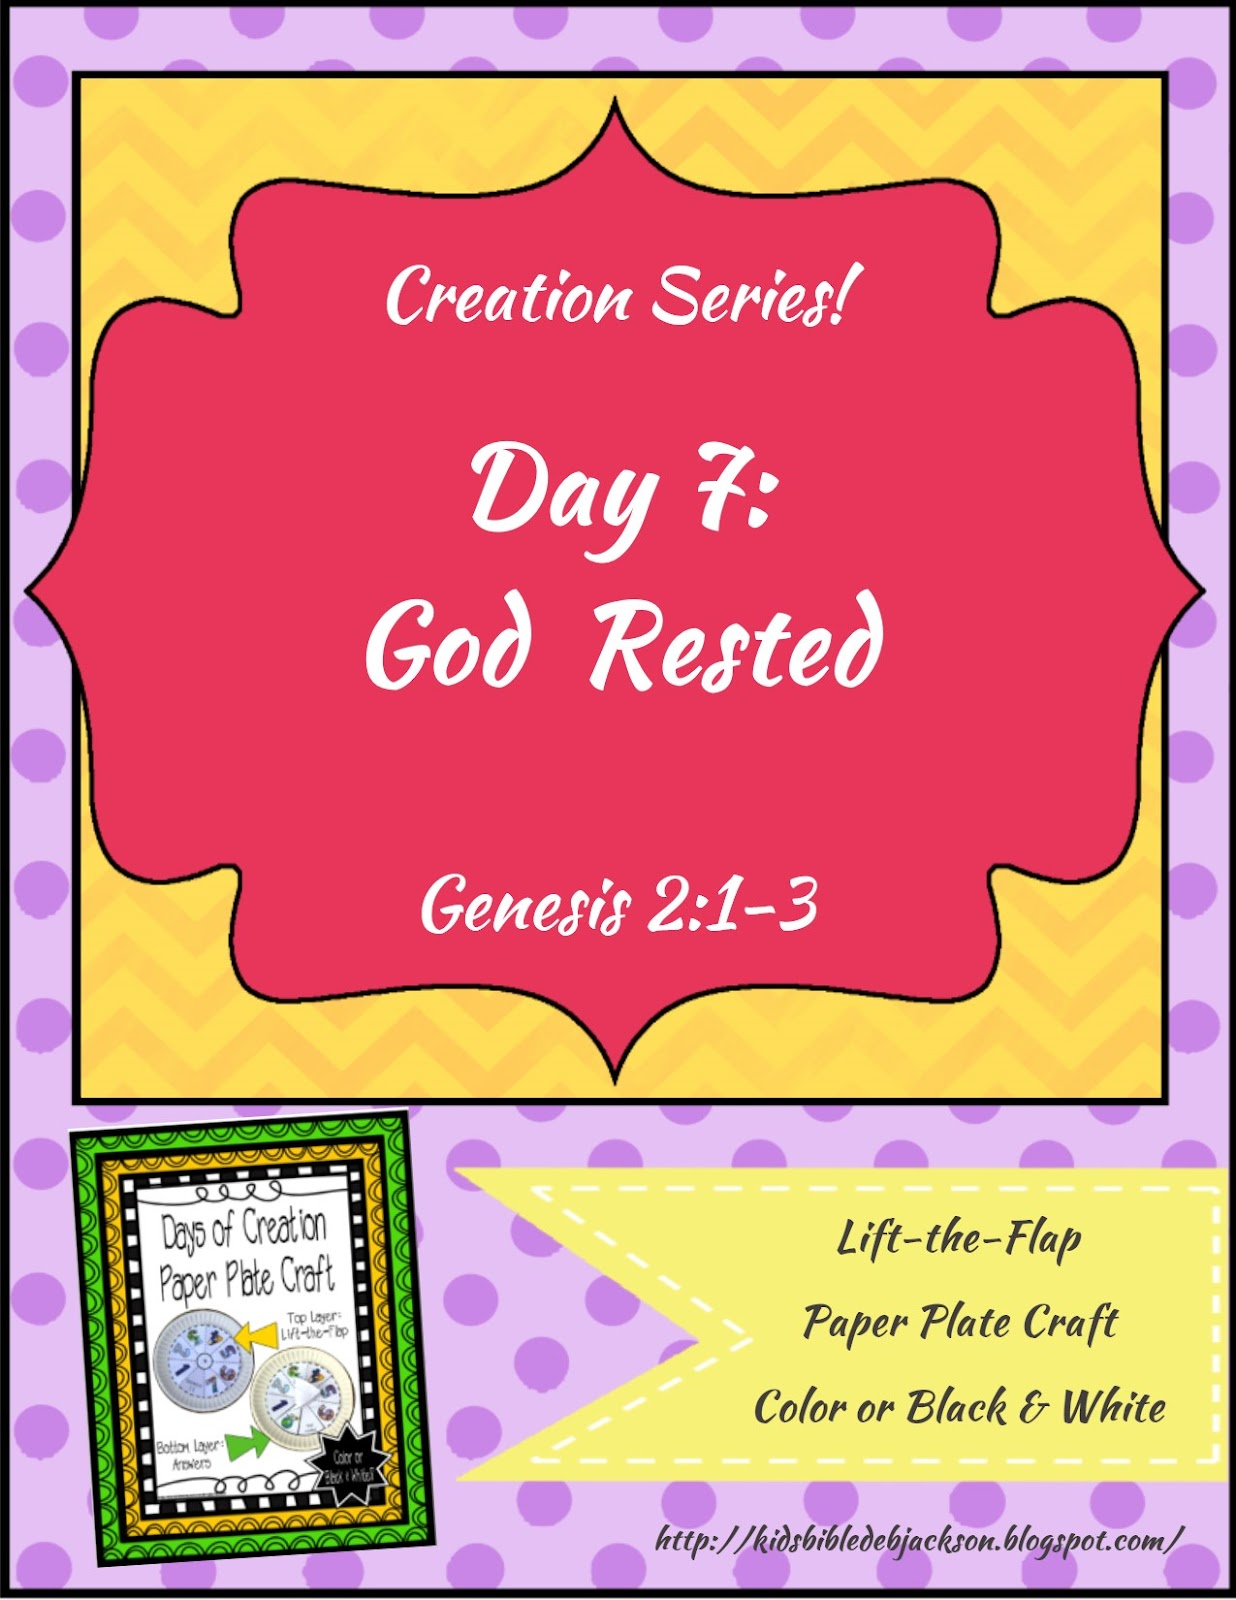 http://kidsbibledebjackson.blogspot.com/2015/01/the-creation-for-kids-day-7.html